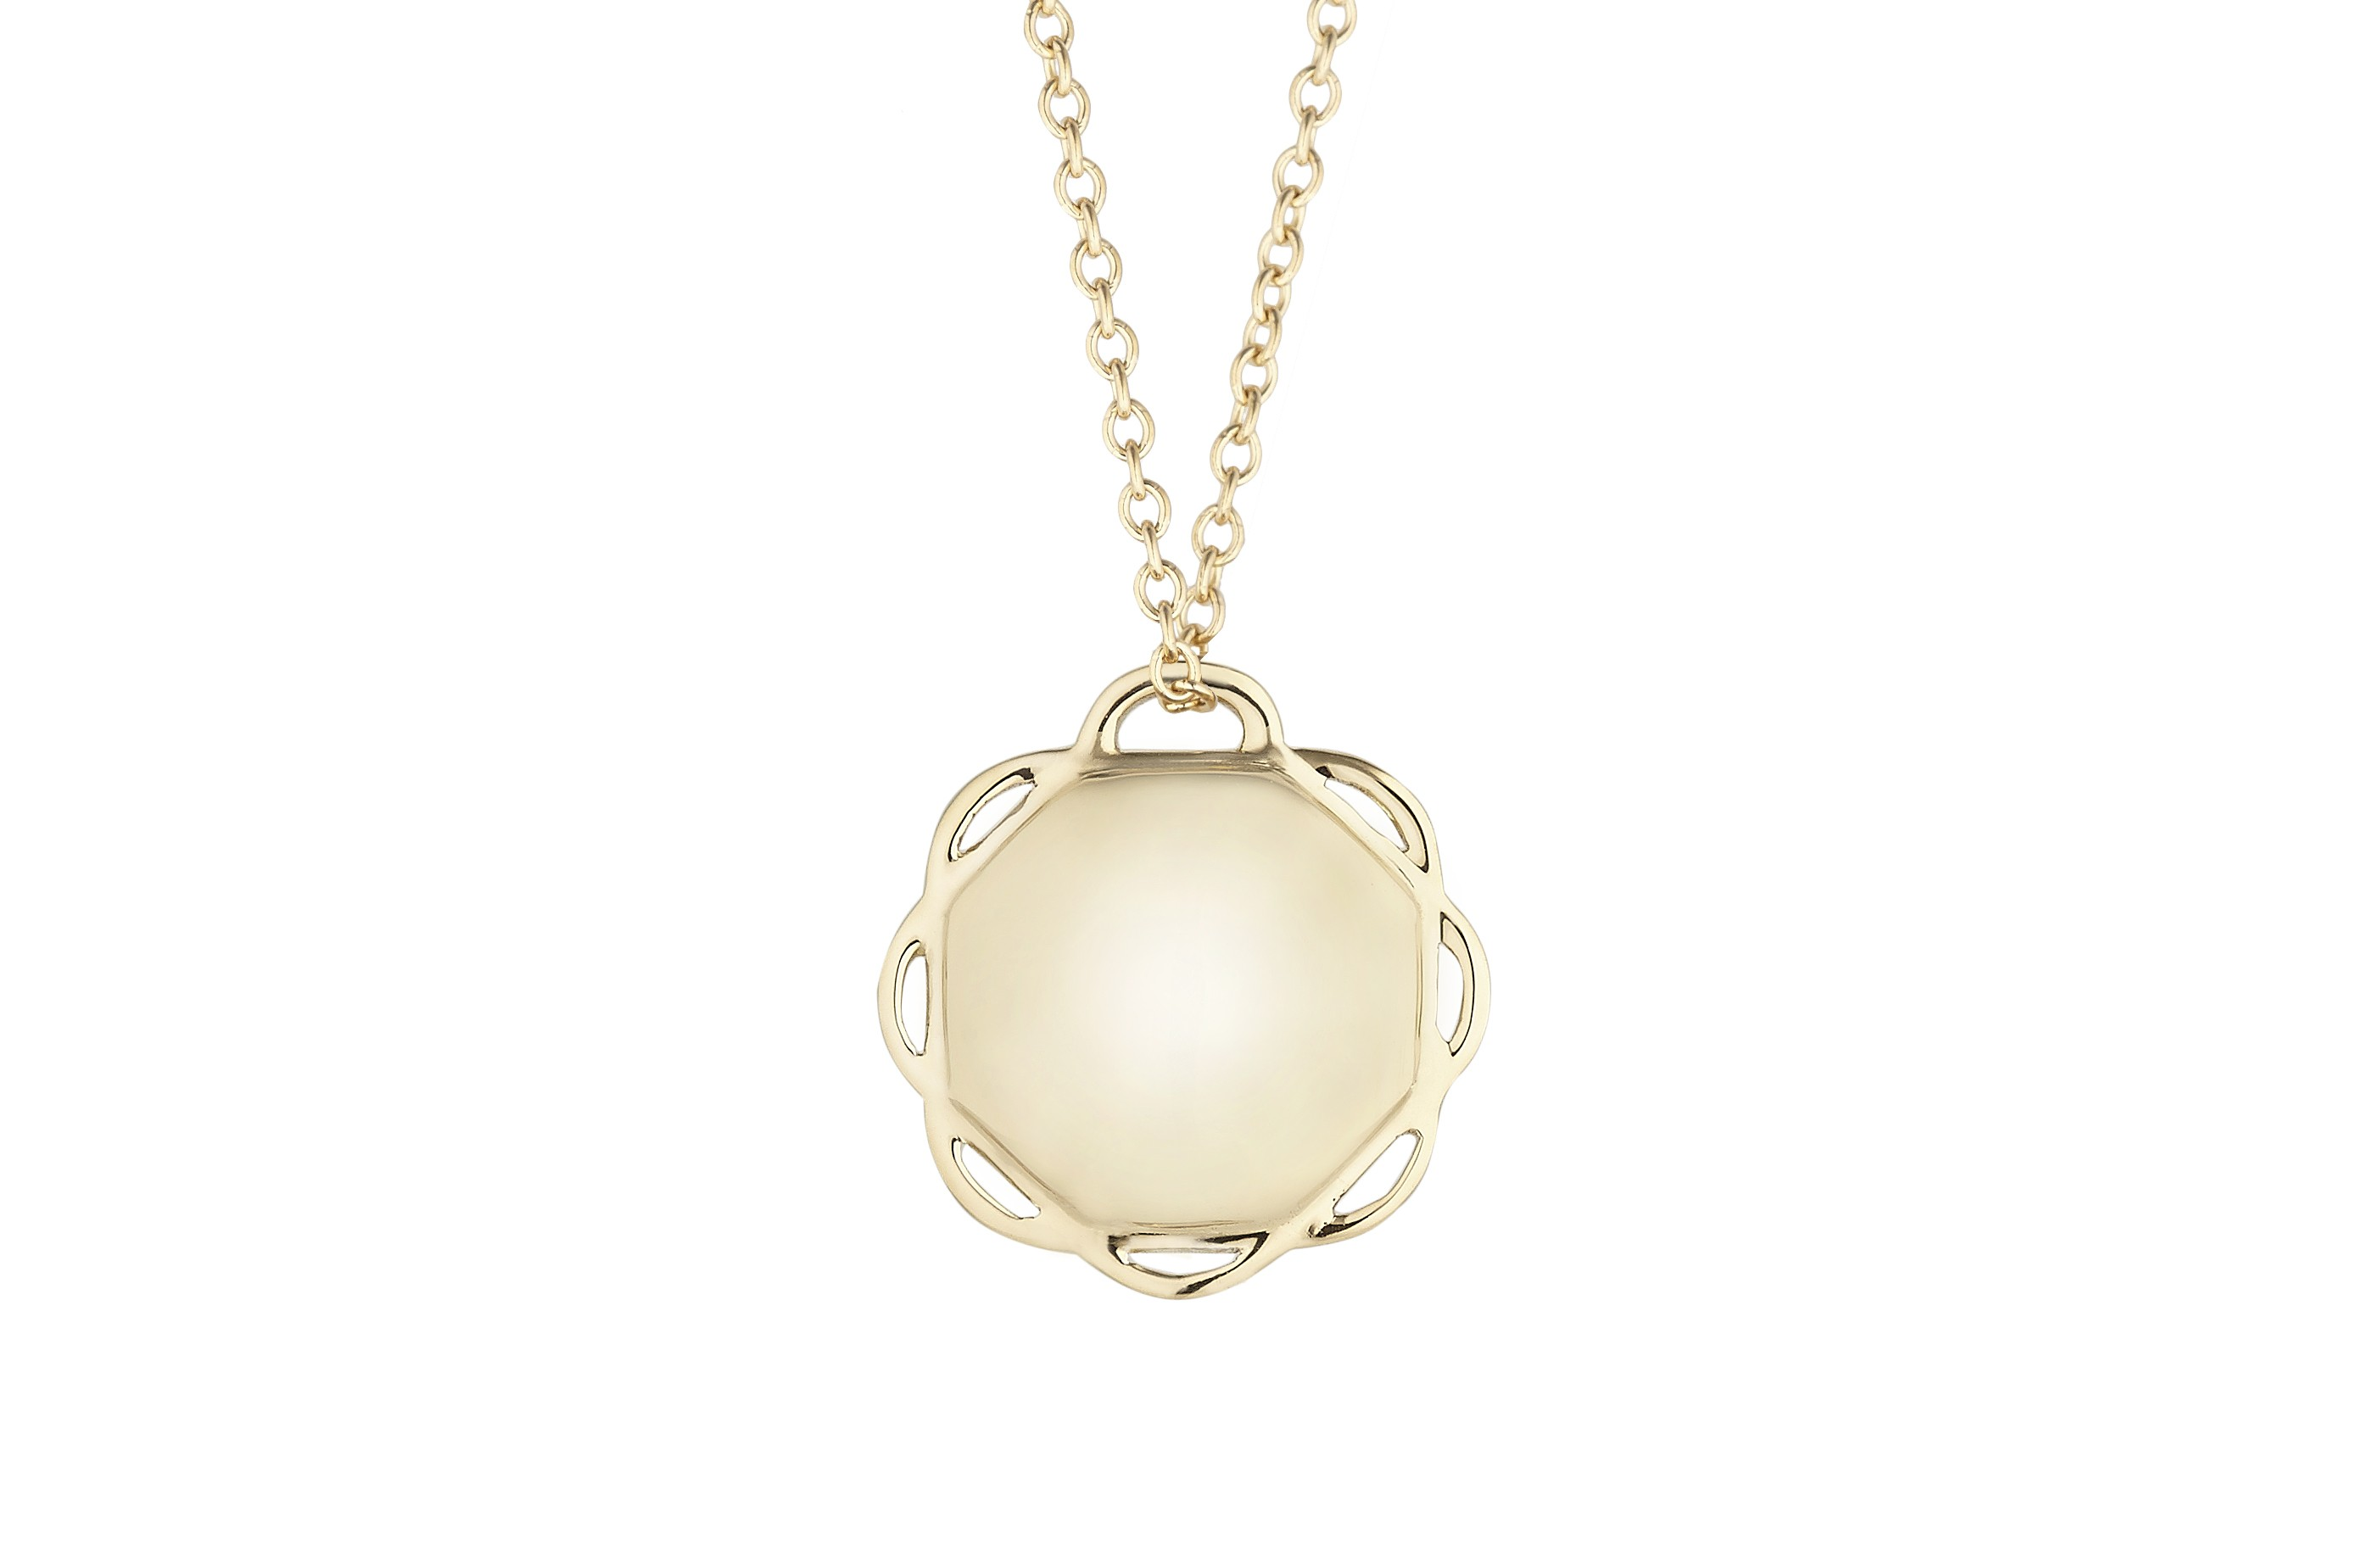 18K Yellow Gold Single Circle Flora Pendant on AIDIA Extendable Link Chain